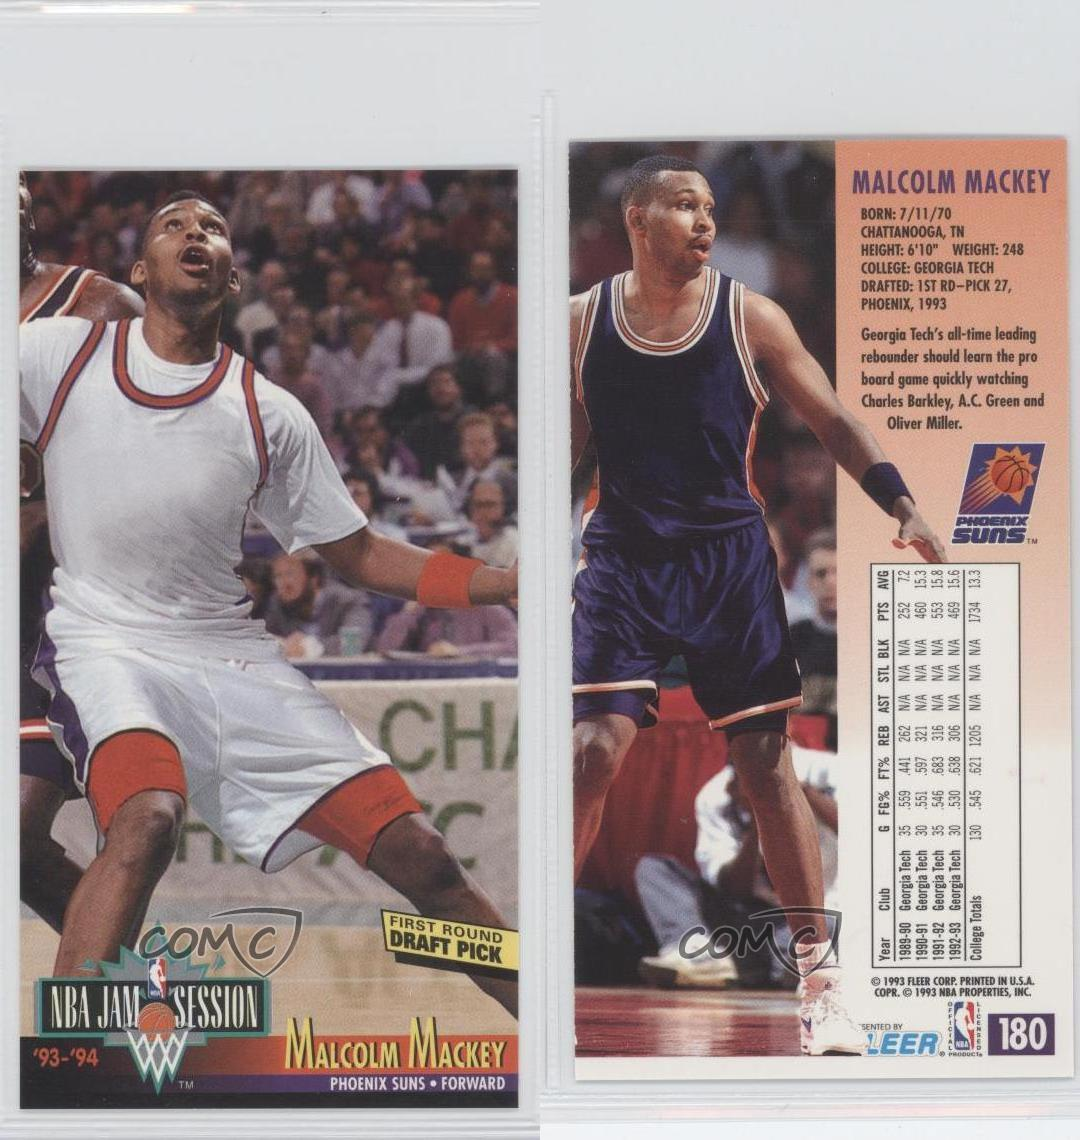 1993-94 NBA Jam Session #180 Malcolm Mackey Phoenix Suns